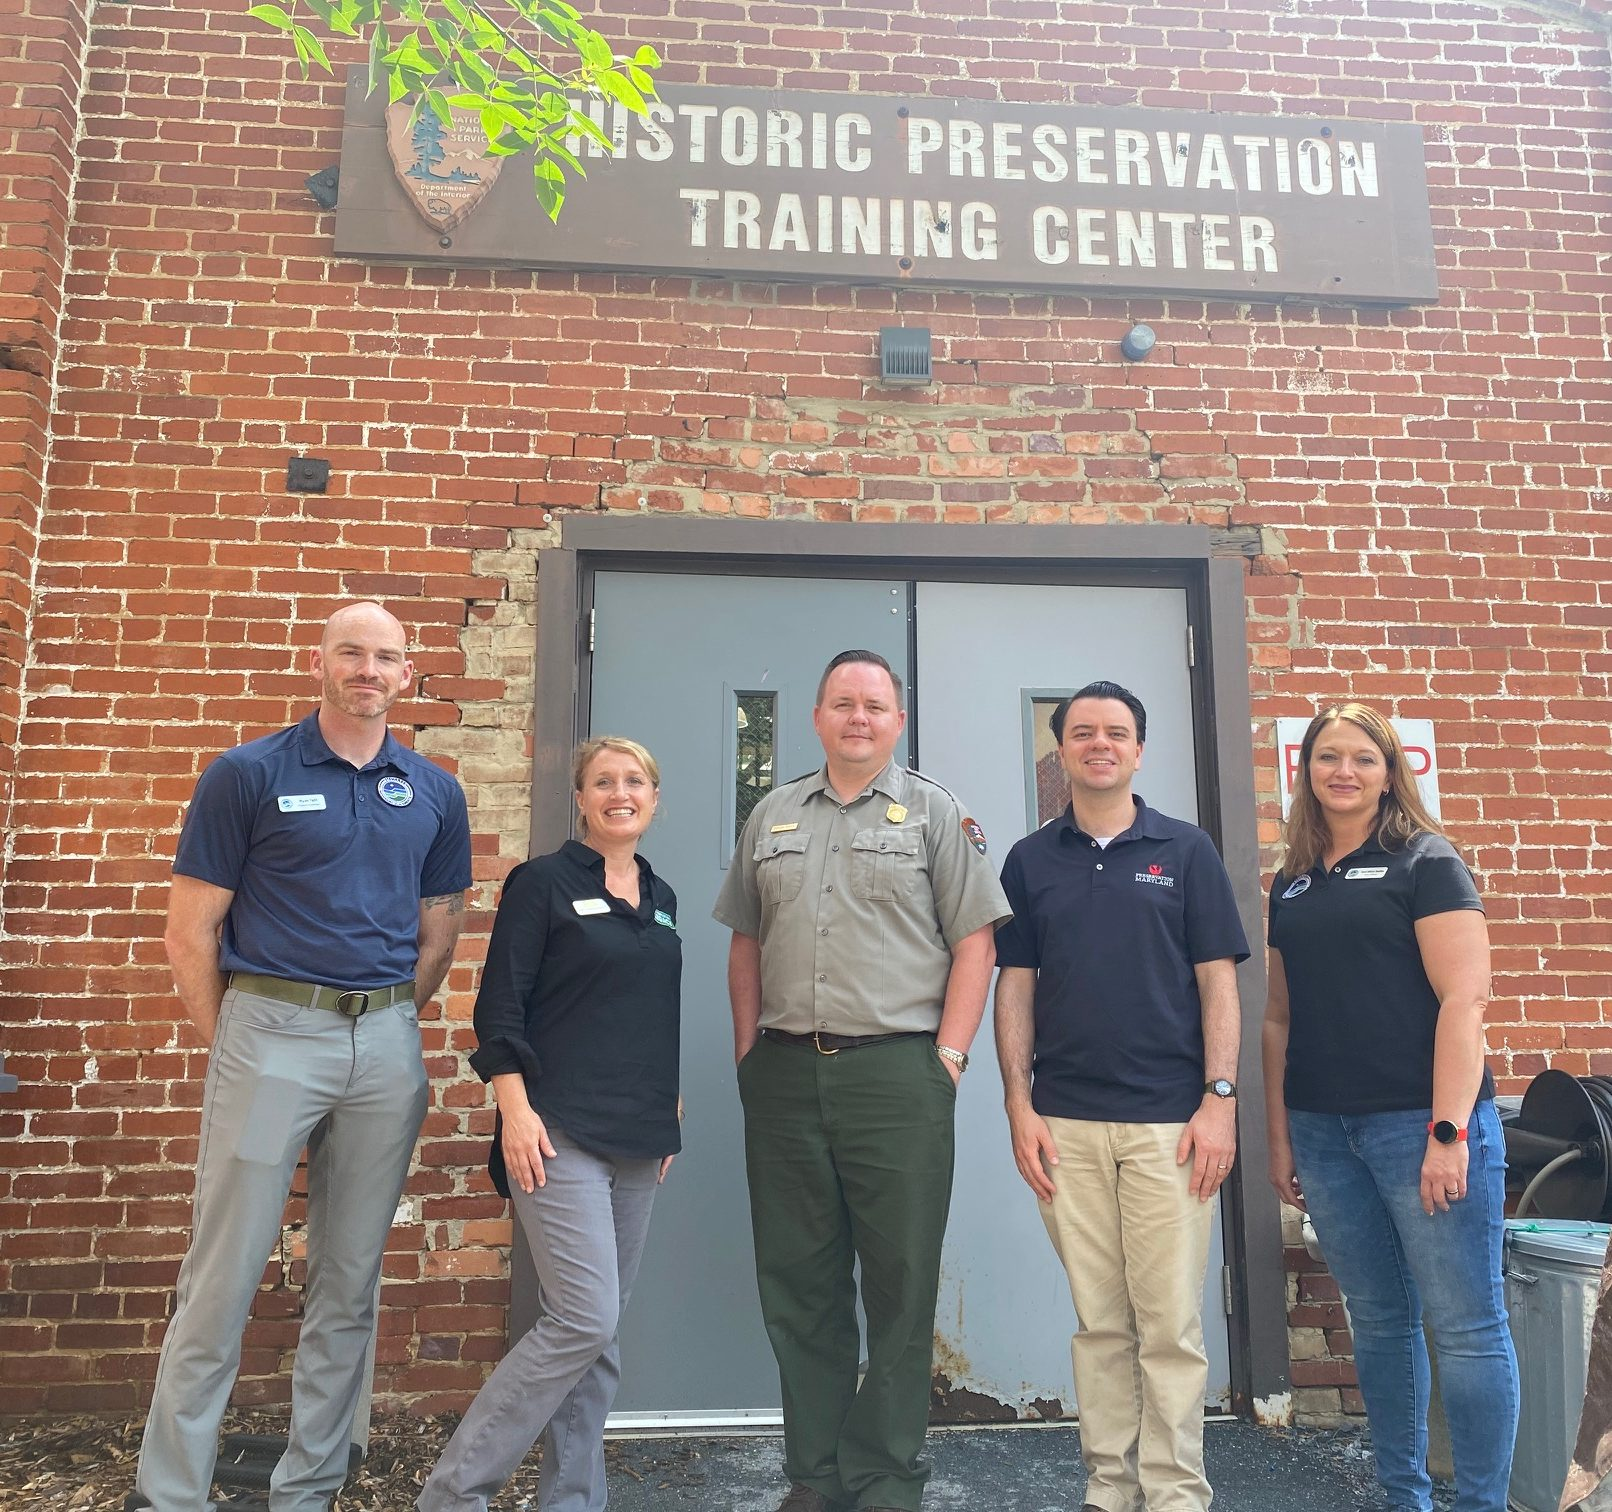 Partners from Conservation Legacy, Campaign for Historic Trades and the National Parks Service